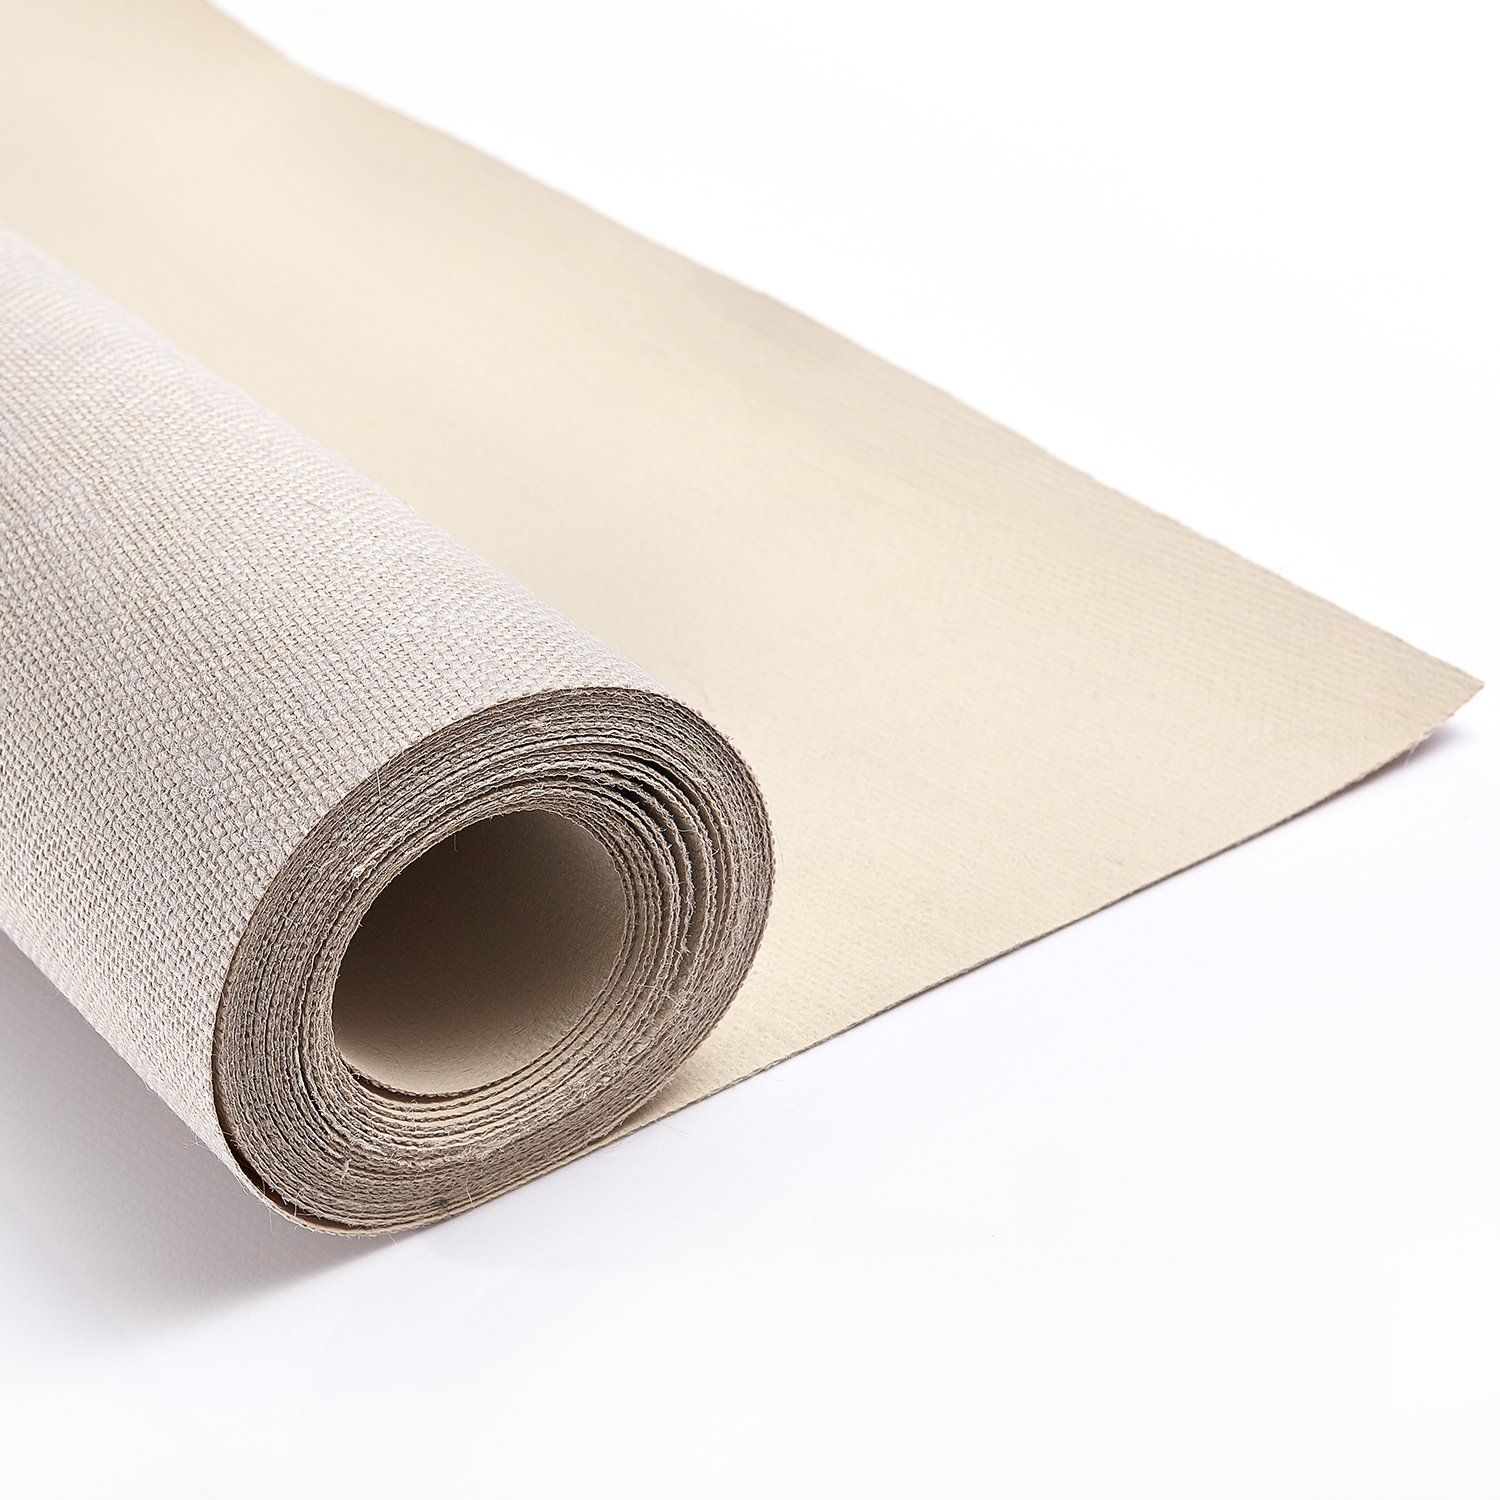 NAC Industrial Extremely Strong & Thick Waterproof Drop Cloth - Tough MAT Extreme – Professional Surface Protection (4 x 10 Feet)